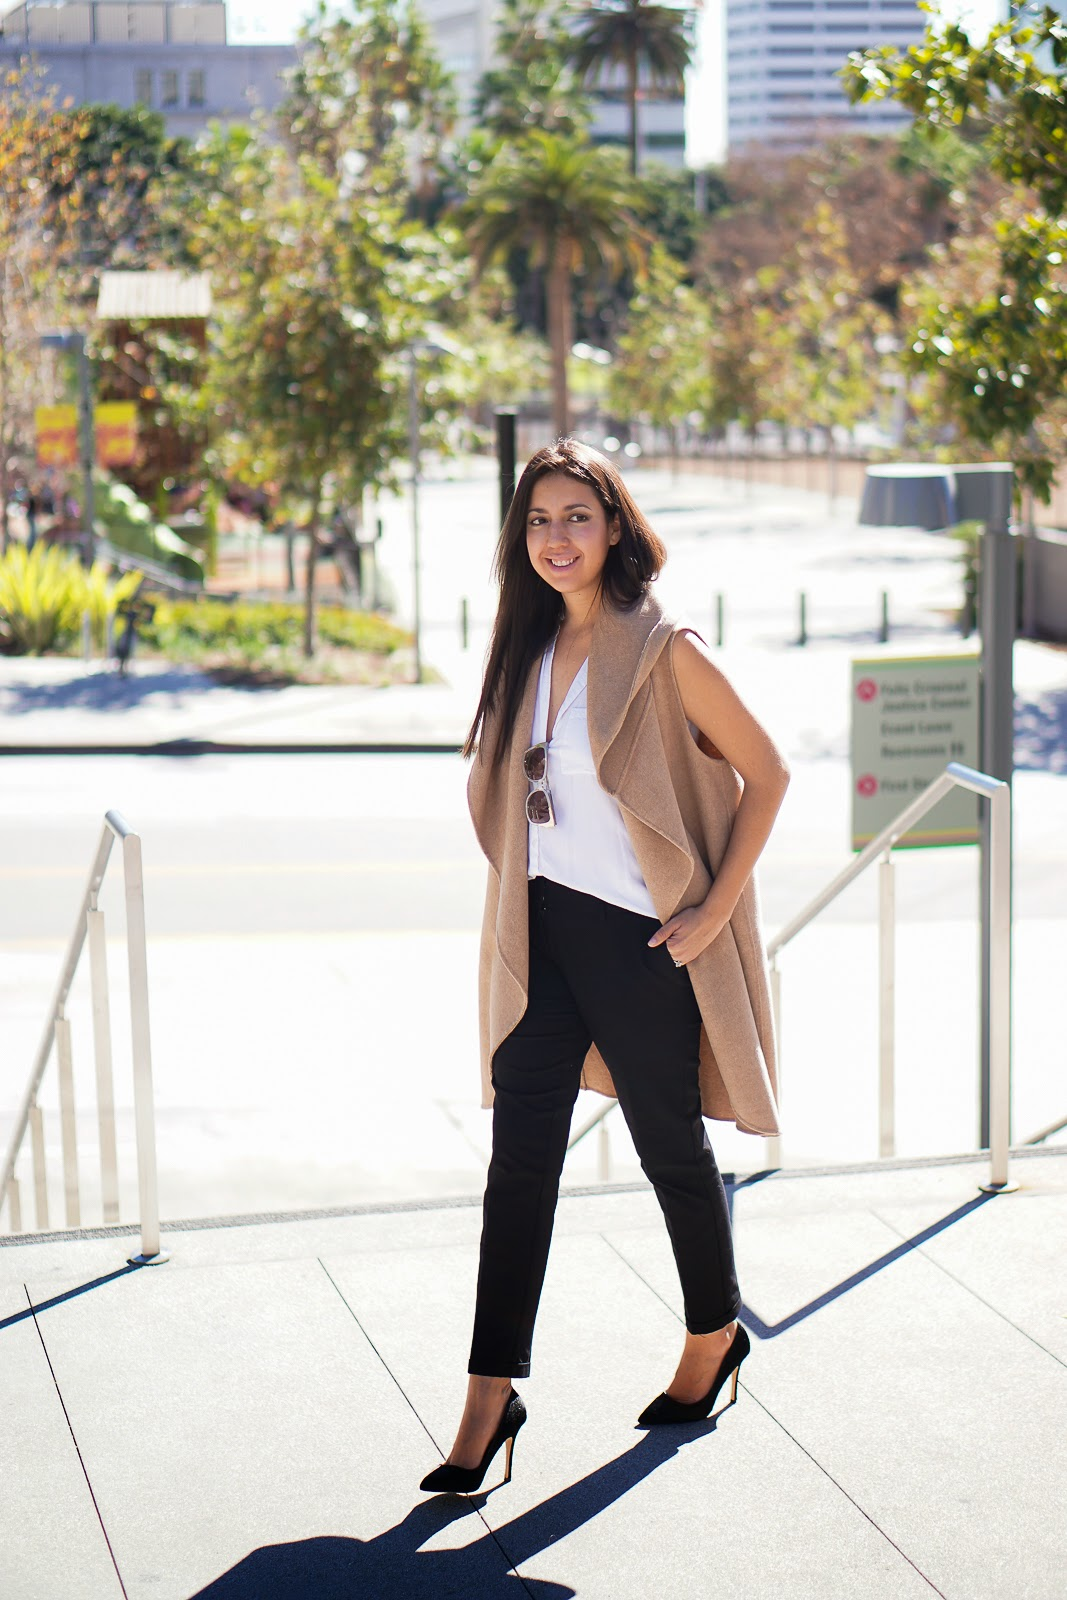 Lookbook, Zara Camel Vest, Camel Vest, Zara Vest, Shoemint Heels, Black Heels, Black Pumps, Aldo Bag, Zara Hand Made Long Waistcoat, Zara Camel Waist Coat, How to Style a Camel Vest, LA Fashion Blogger, Latina Fashion Blogger